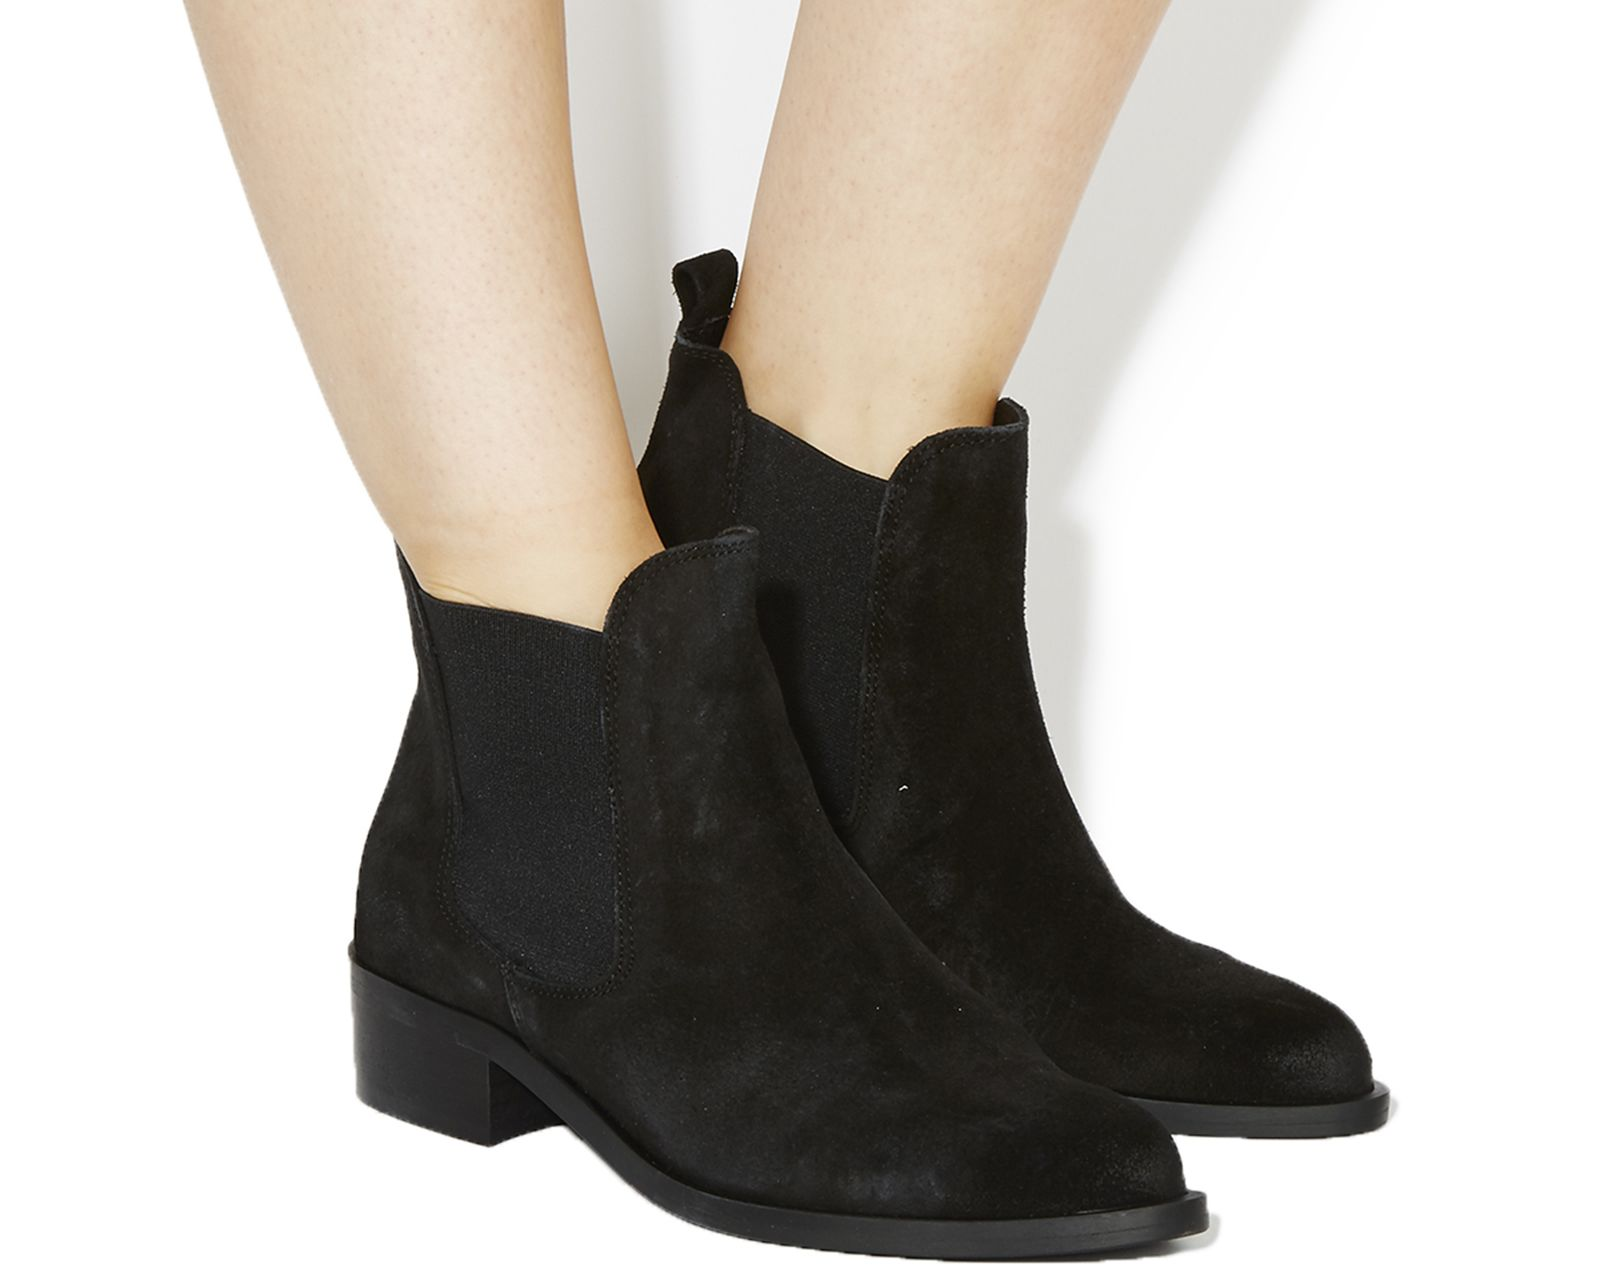 Office Corsa Pointed Low Block Heel Boots Black Suede - Ankle Boots